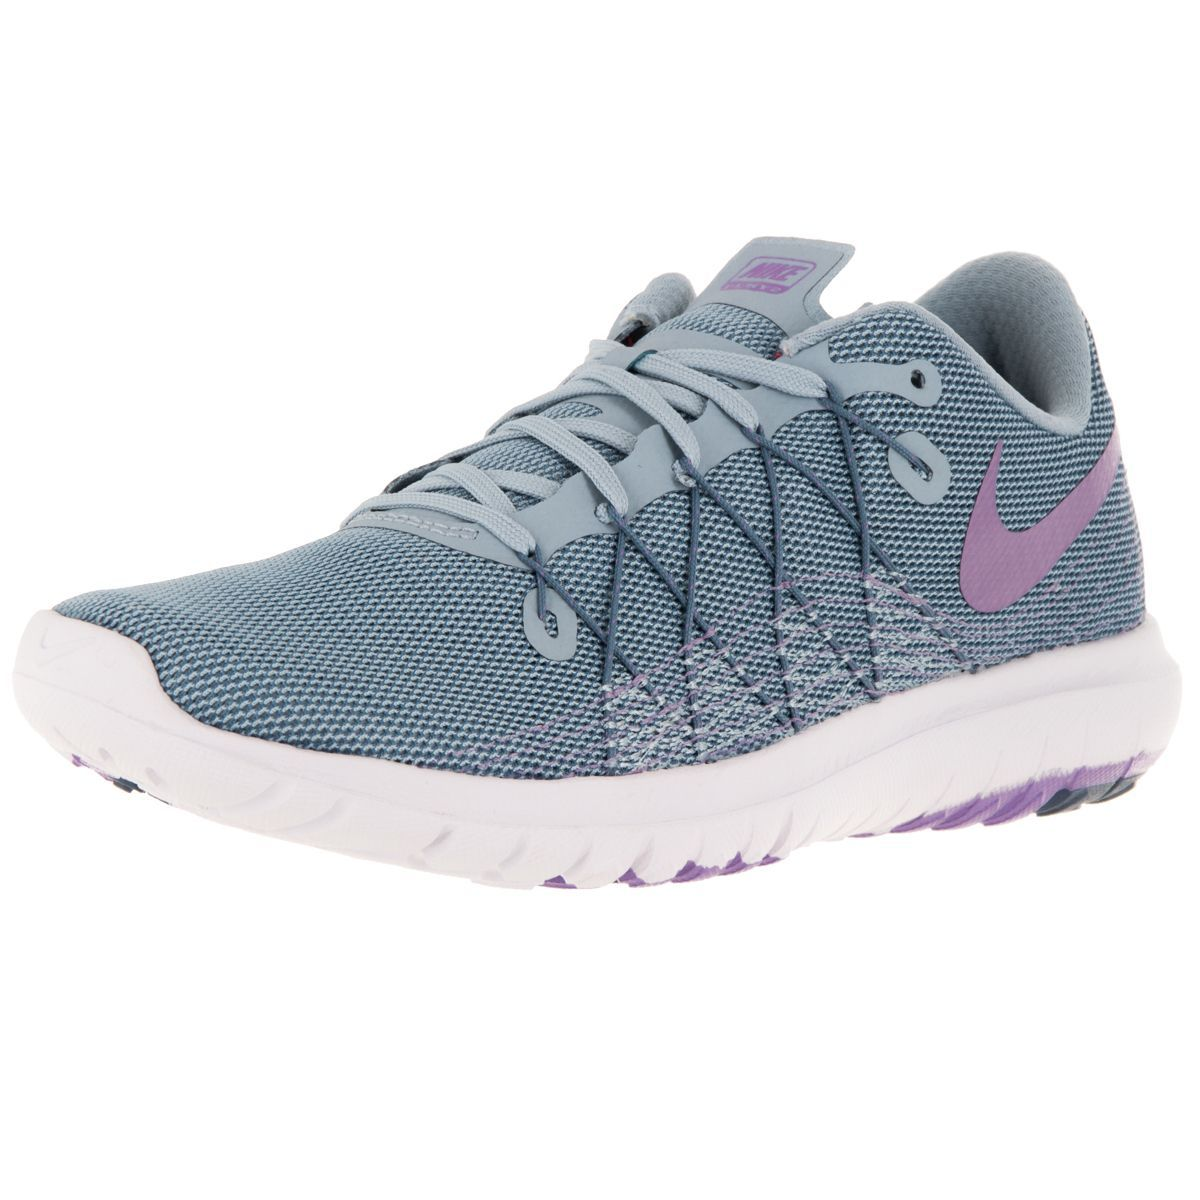 competitive price e18d5 d35a4 Nike Women's Flex Fury 2 Grey/Urban Llc/Ocn Fg/White Running ...